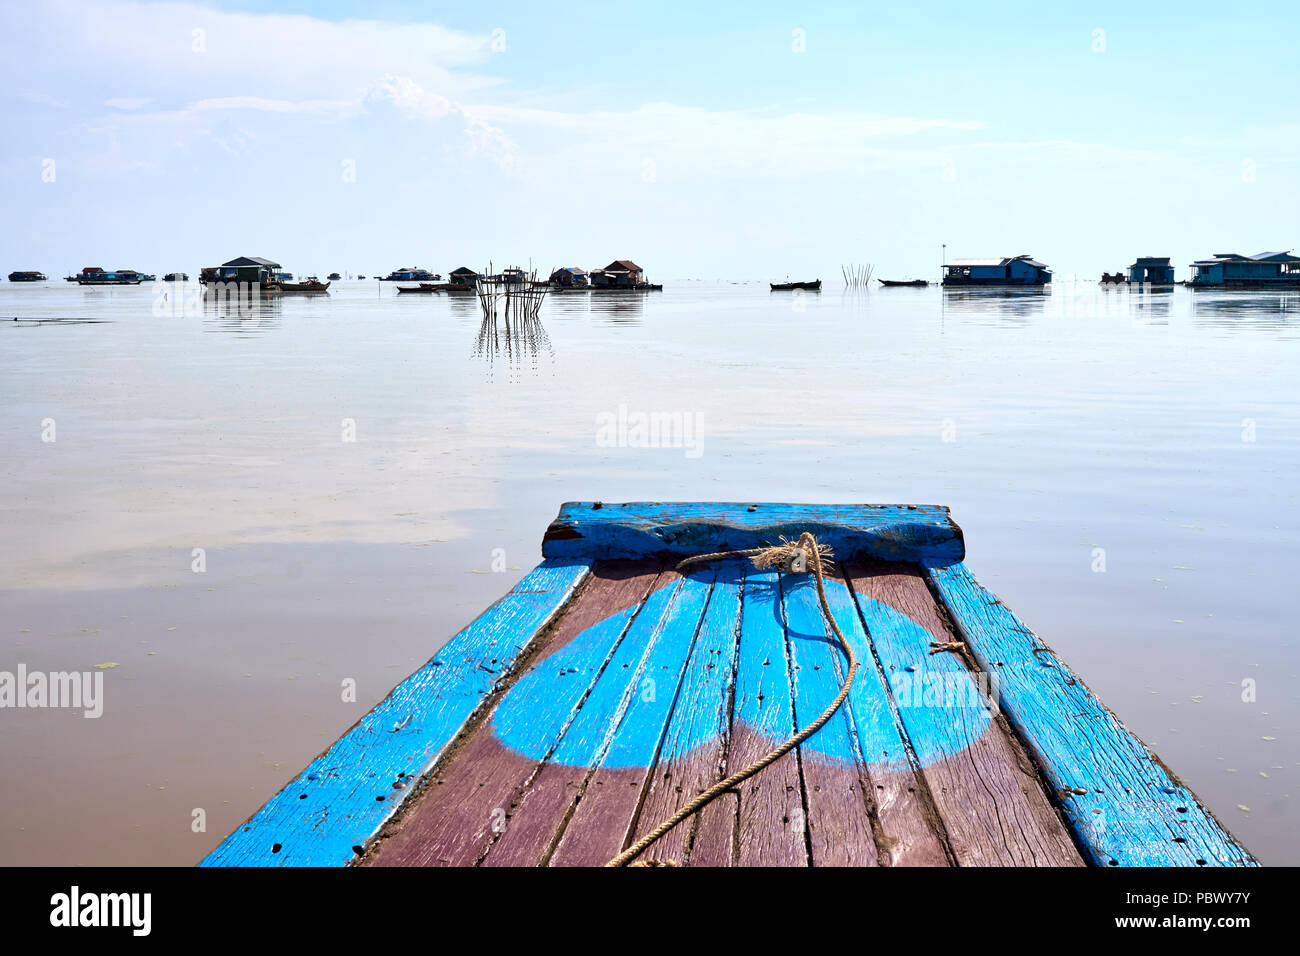 Floating homes on Tonle Sap lake in Cambodia - Stock Image